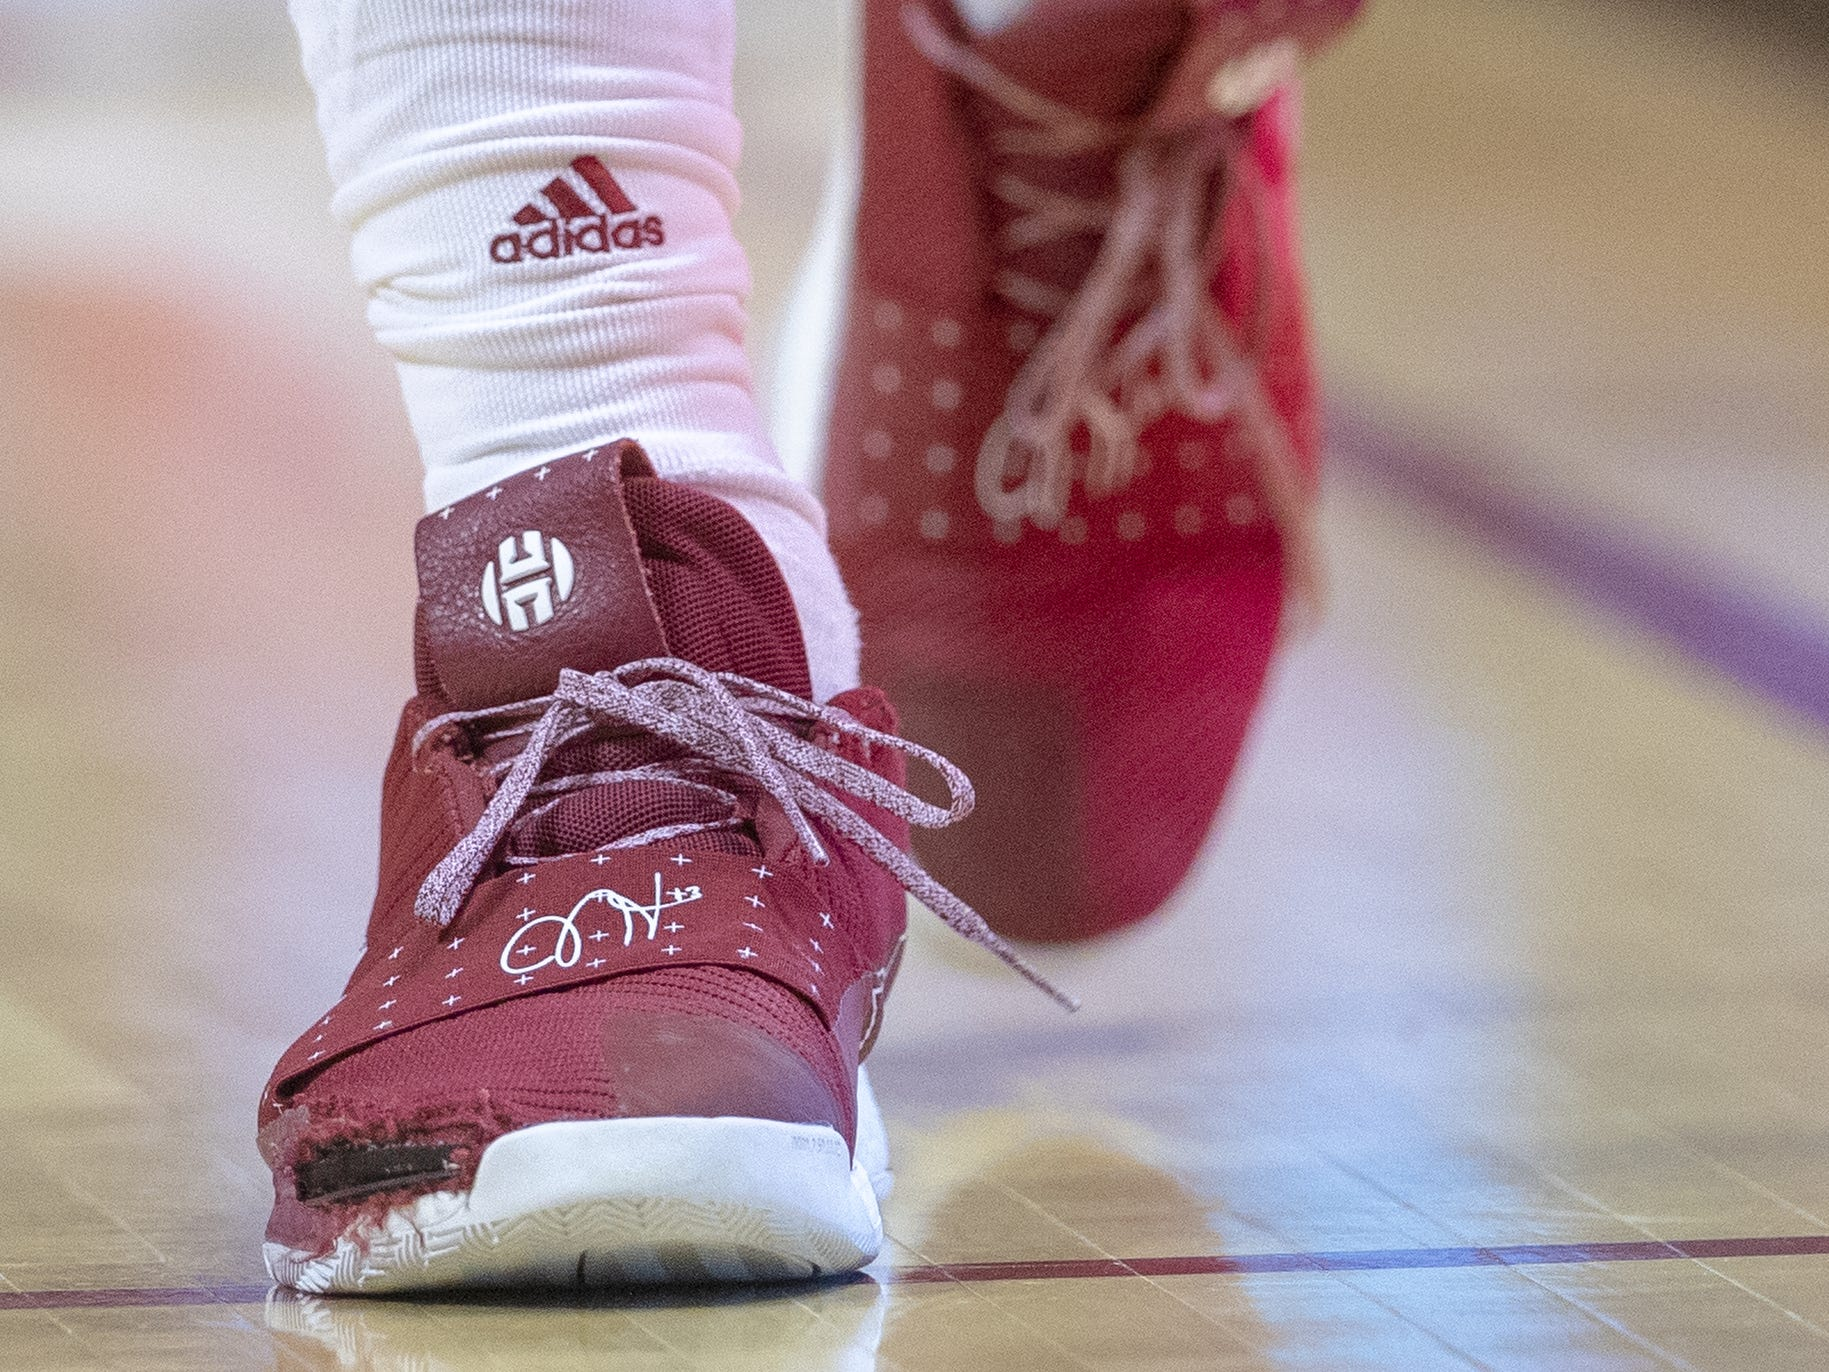 A blown apart Adidas shoe of Indiana Hoosiers forward Justin Smith, Assembly Hall, Bloomington, Tuesday, Feb. 26, 2019.